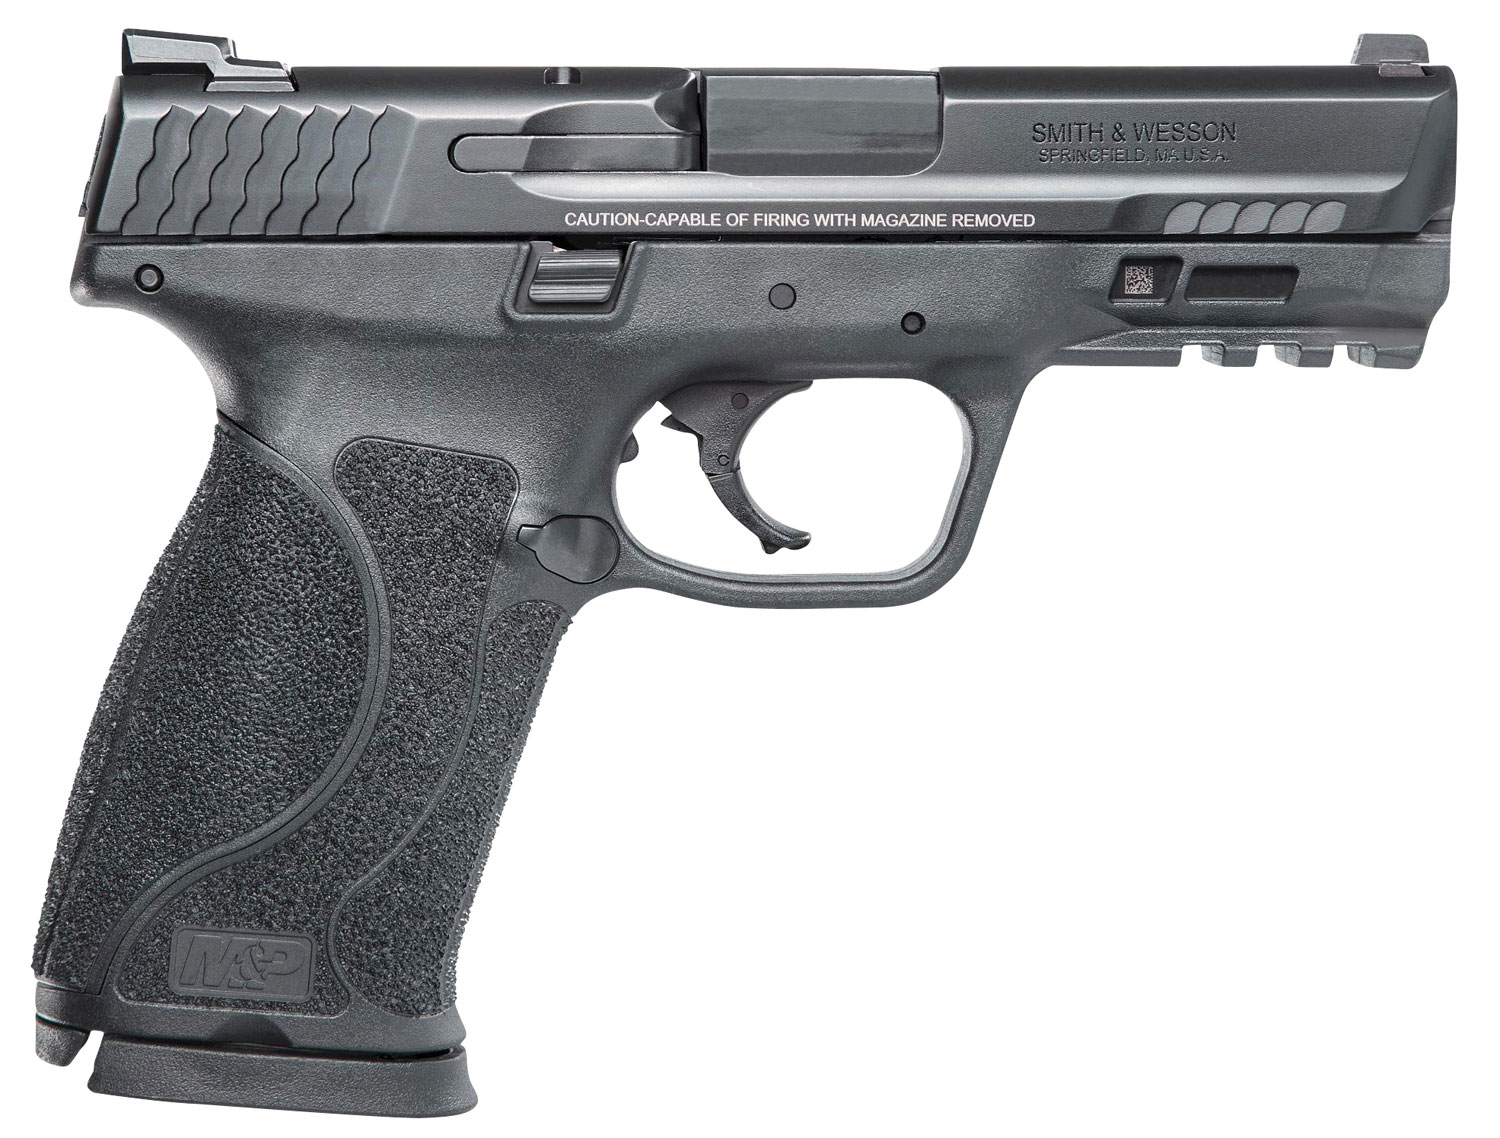 Smith & Wesson 12106 M&P 45 M2.0 Compact  45 ACP Double 4